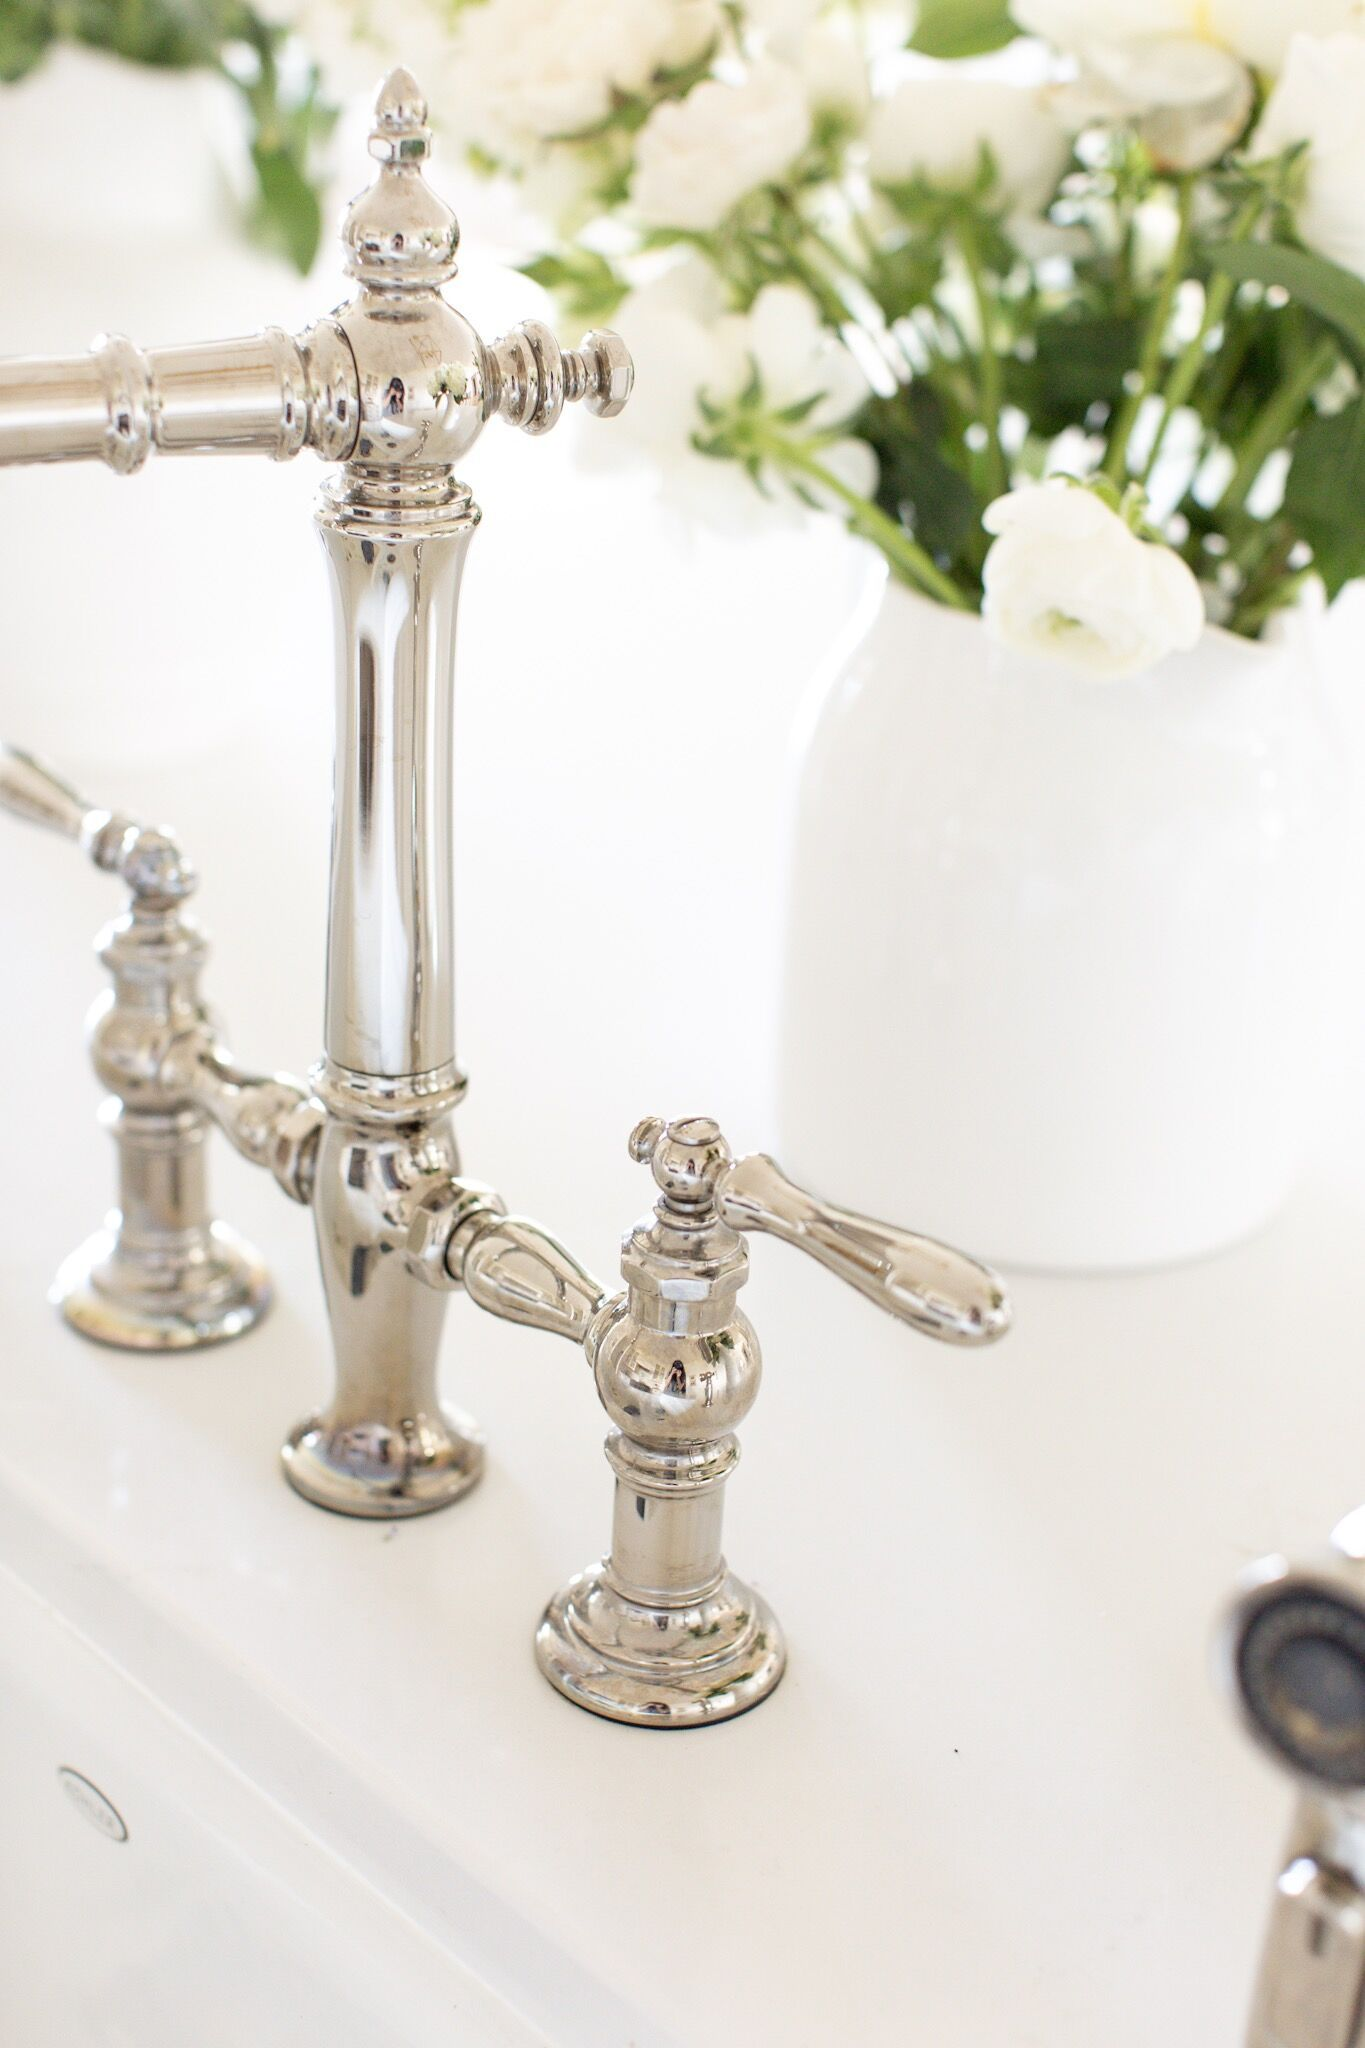 Our Top 14 Kitchen Features In 2020 Polished Nickel Faucet Kitchen Faucet Farmhouse Kohler Artifacts